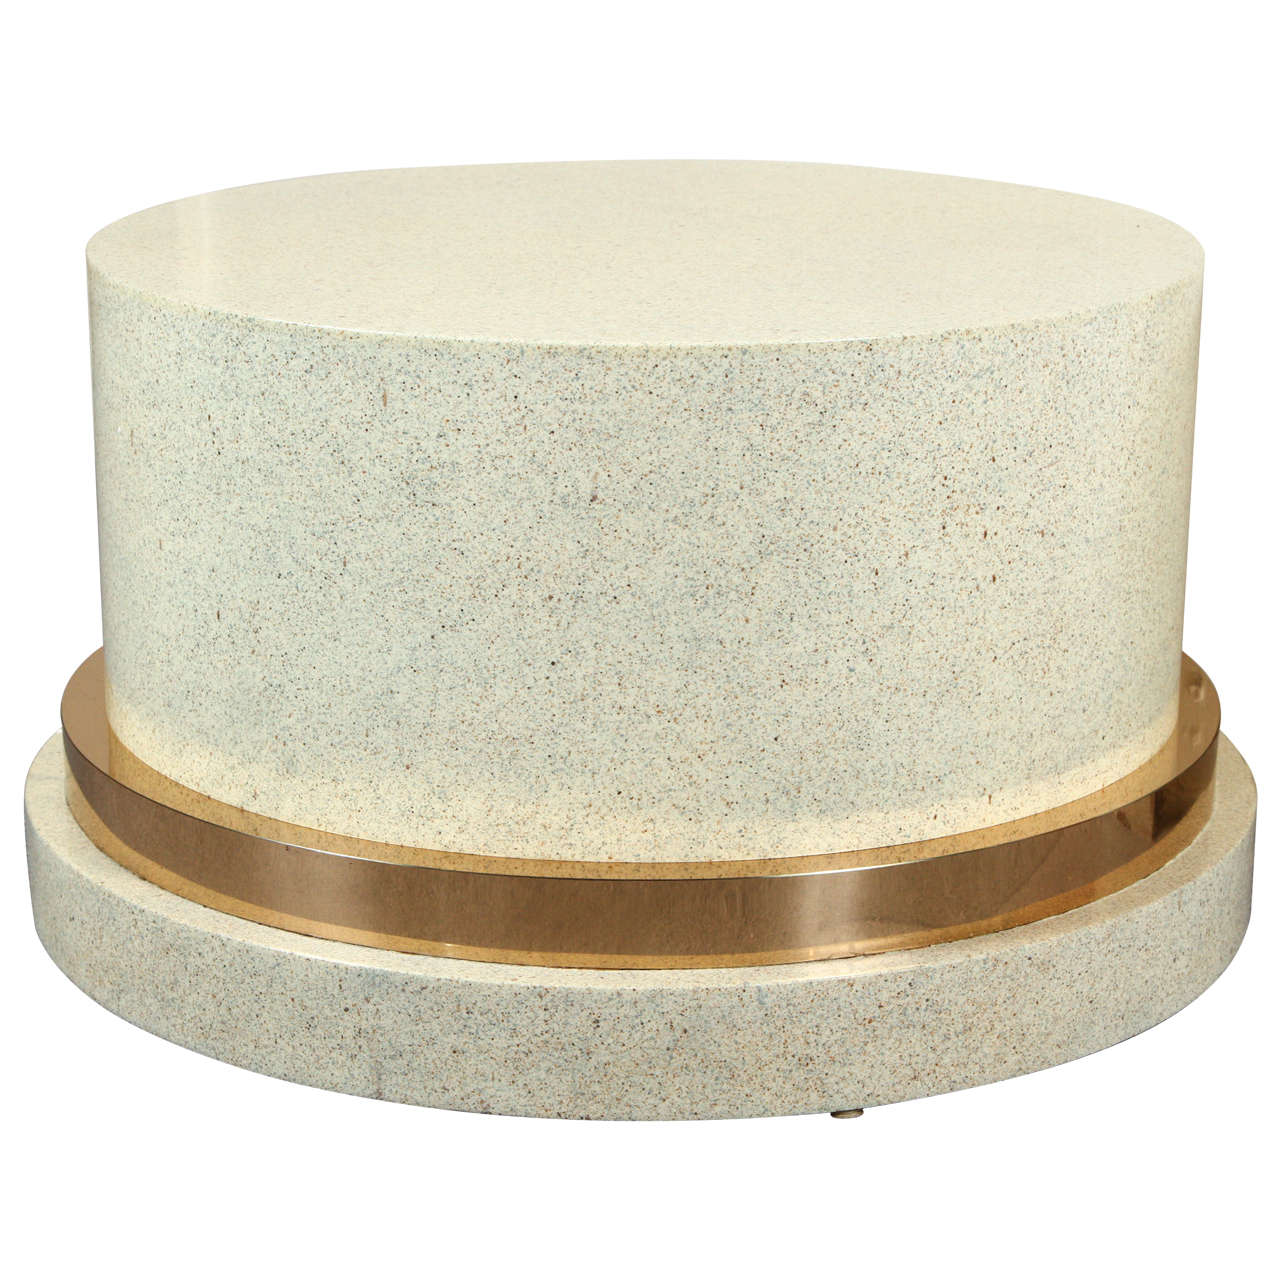 Low Pedestal Or Coffee Table Base Of Wood And Brass With A Faux Stone Finish For Sale At 1stdibs